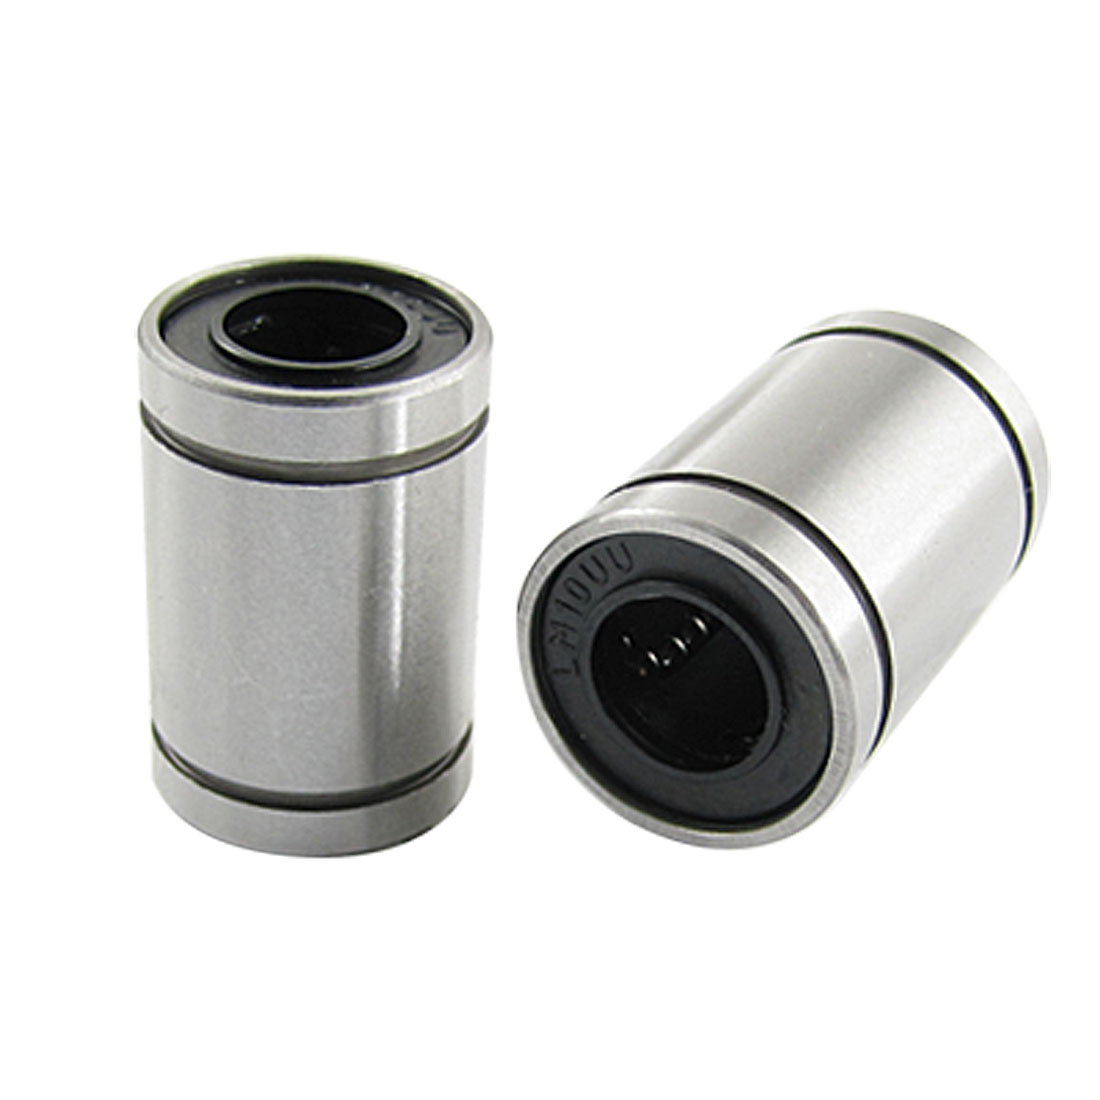 2 Pcs LM10 Carbon Steel Linear Motion Ball Bearings